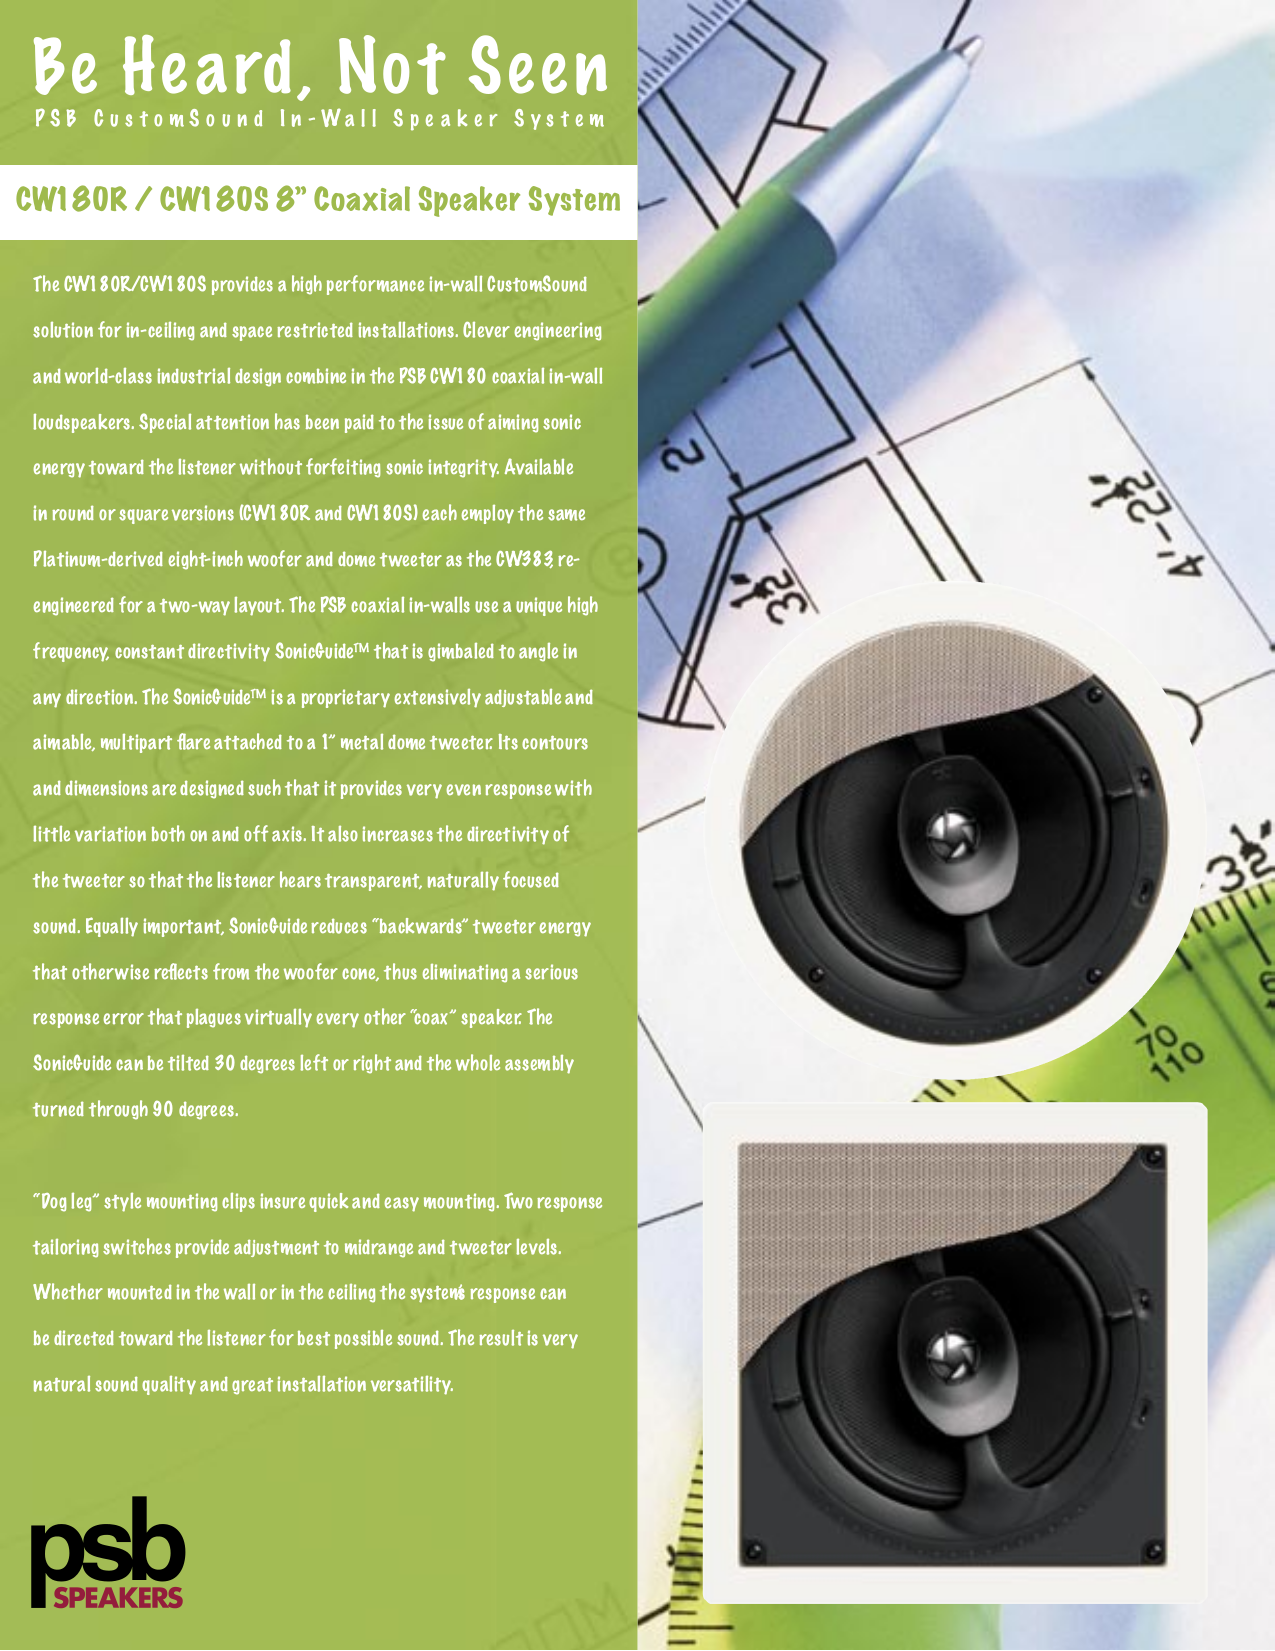 pdf for PSB Speaker System CustomSound CW180S manual